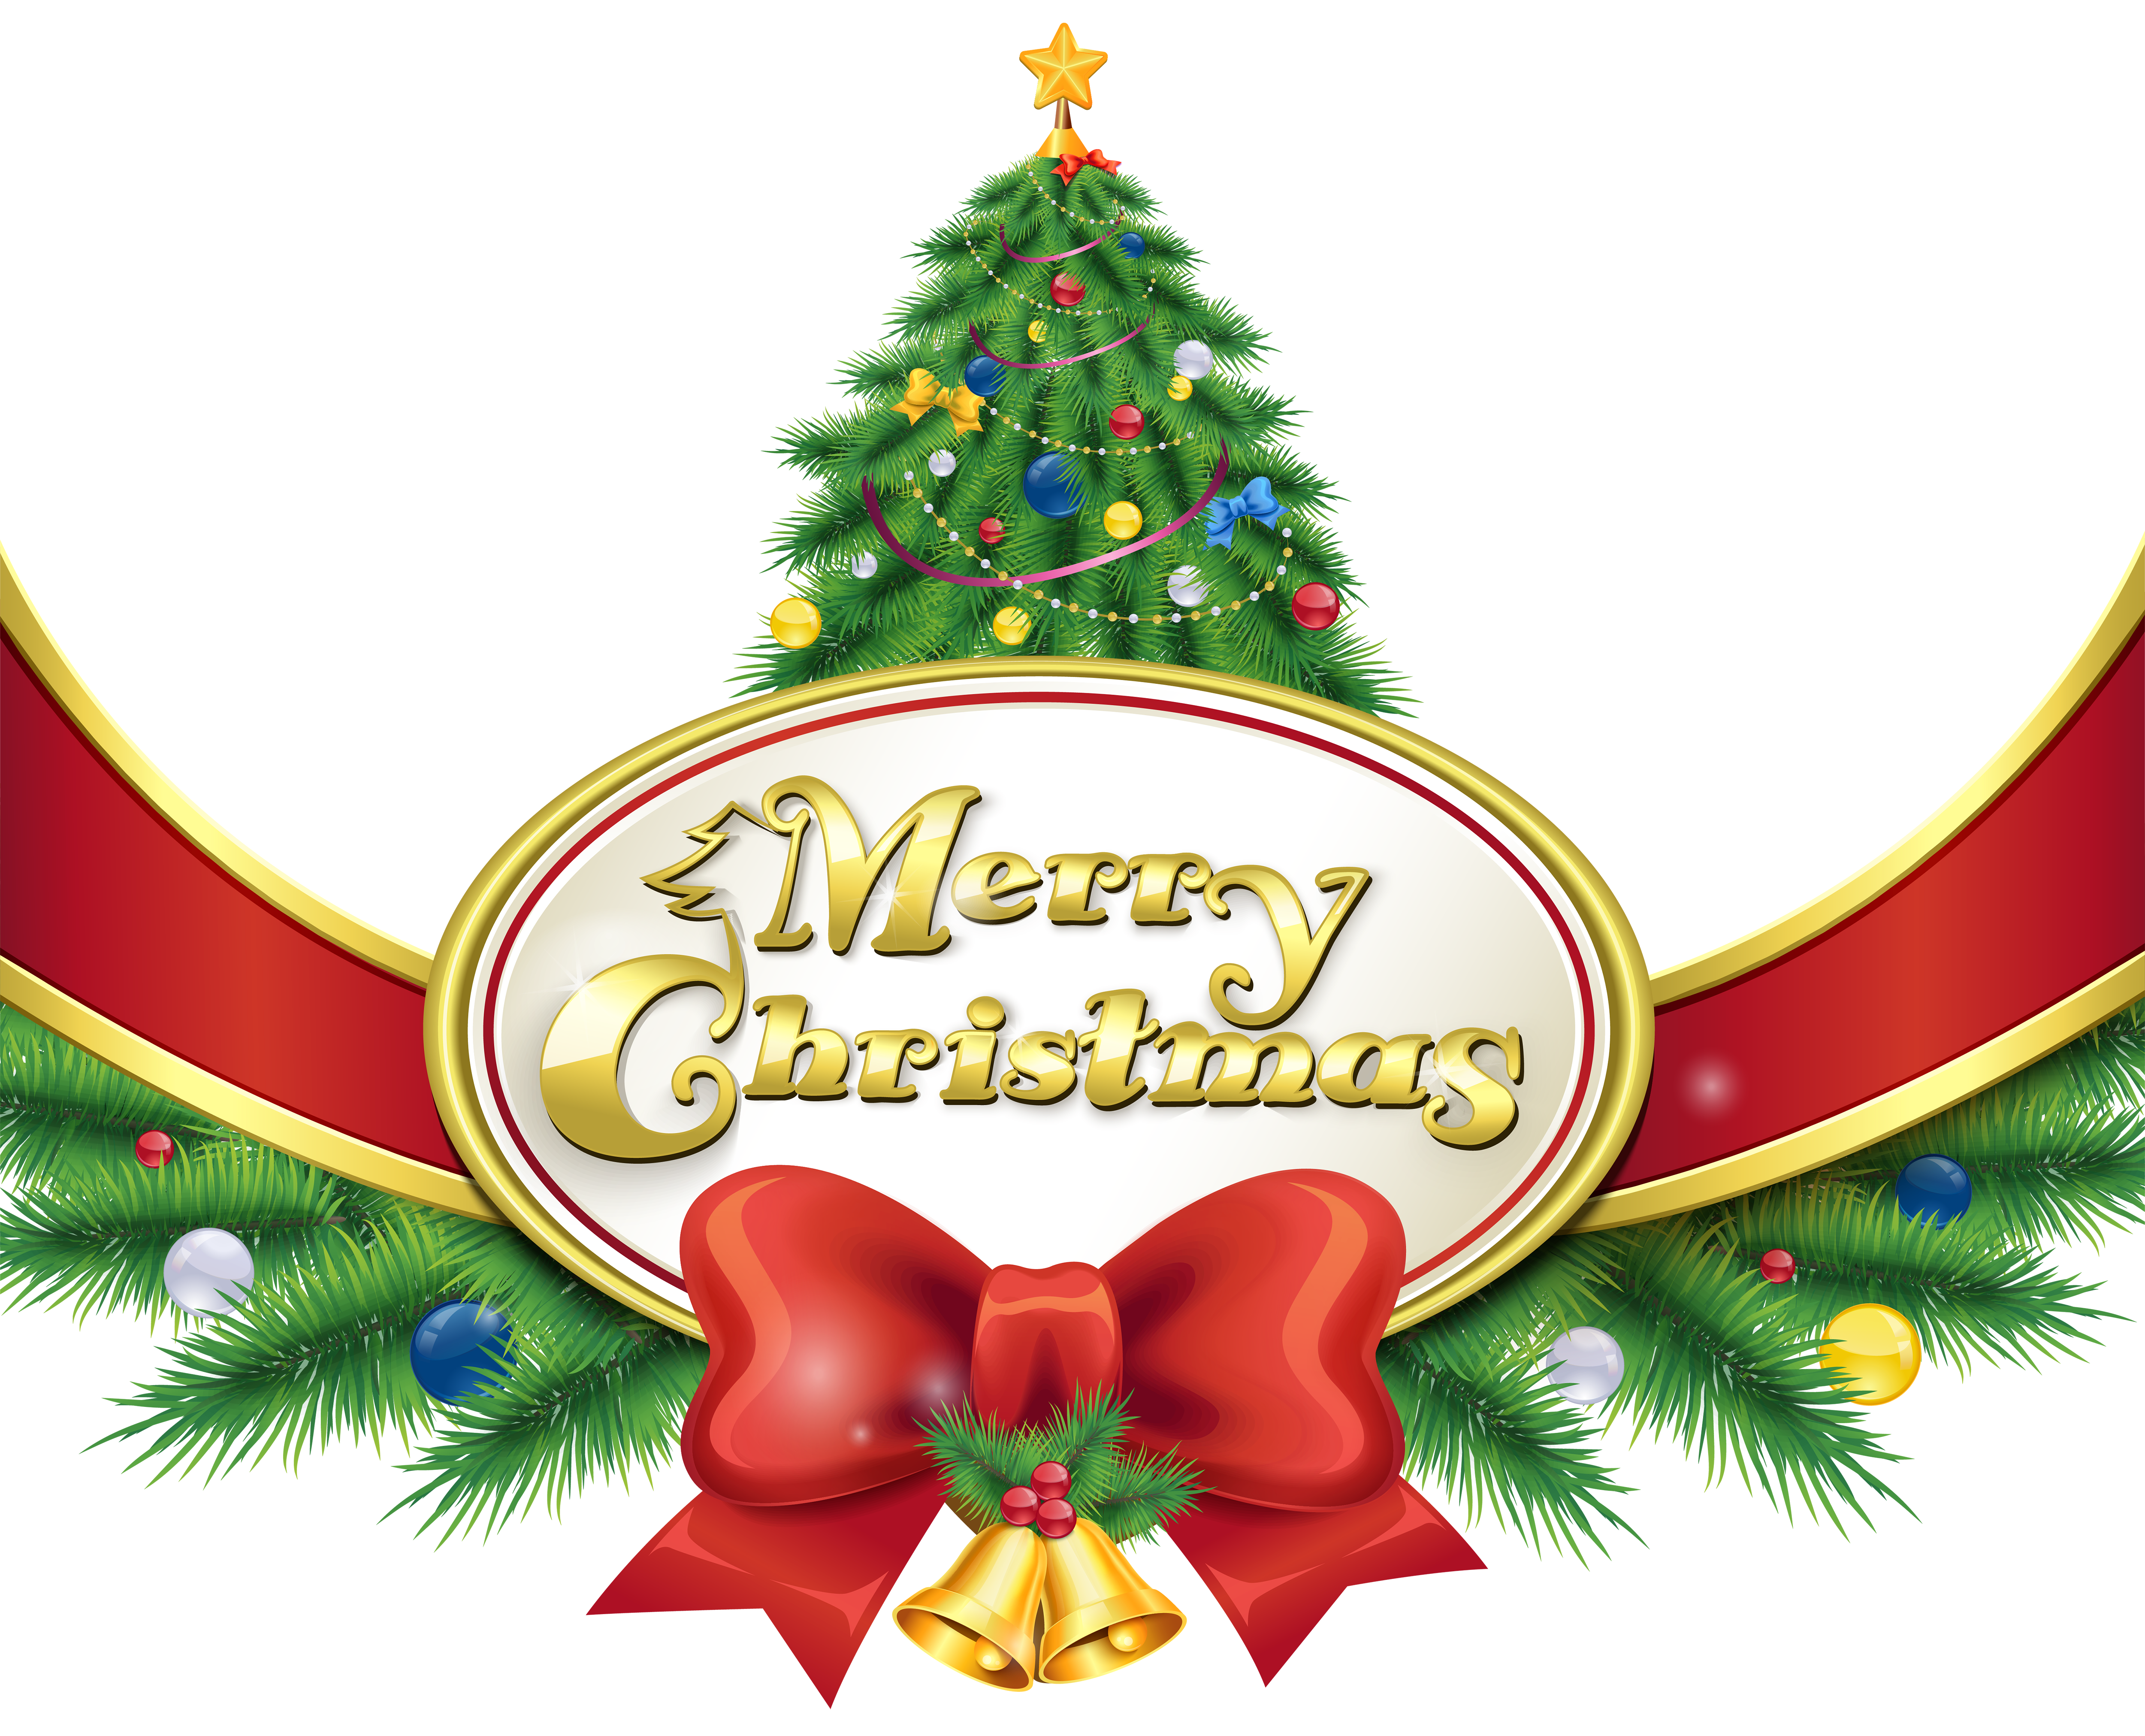 grinch clipart merry christmas